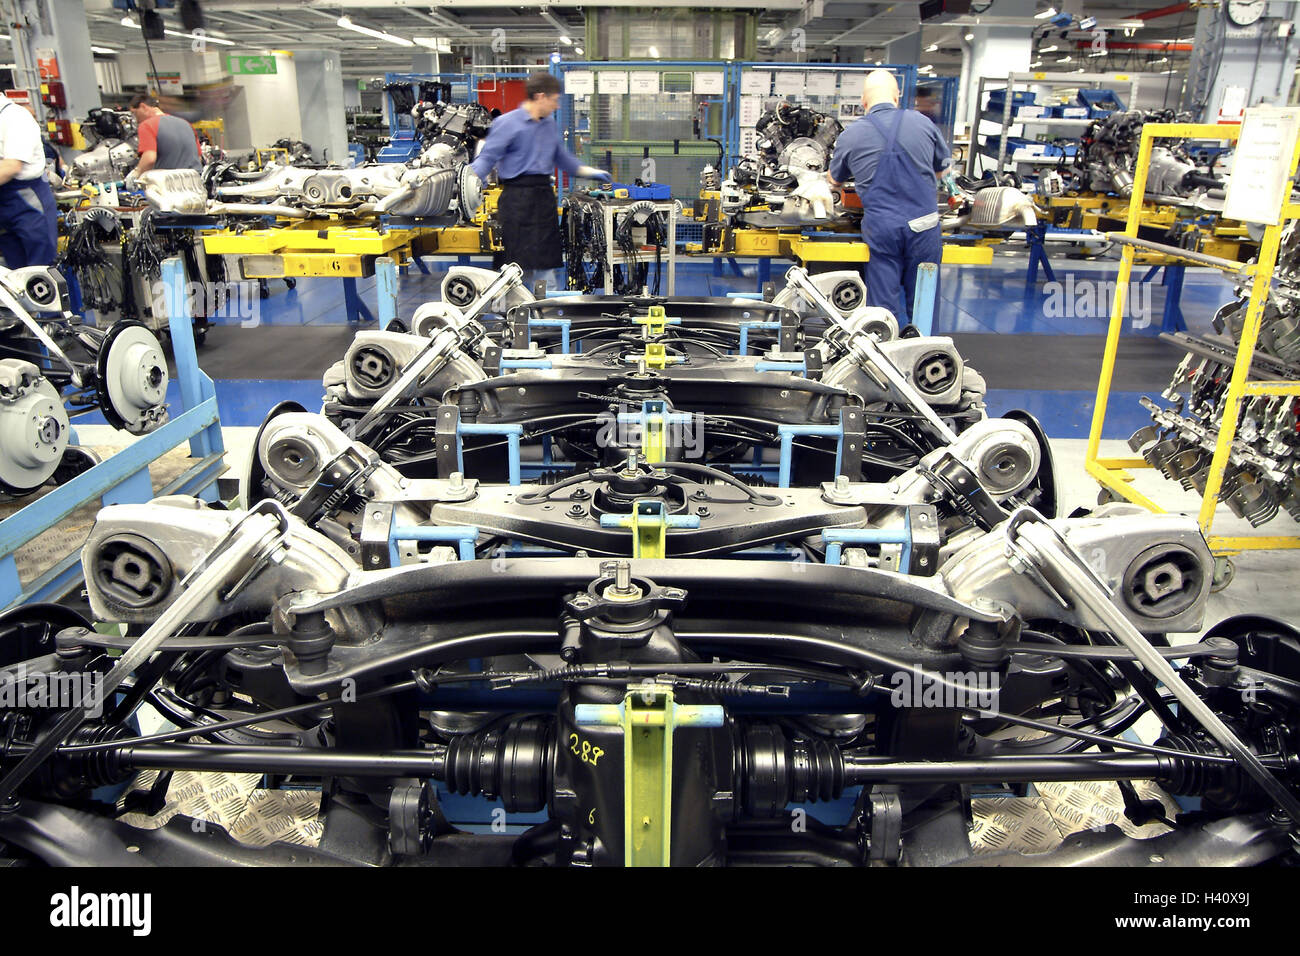 daimlerchrysler opus, mercedes production, editing line, axis